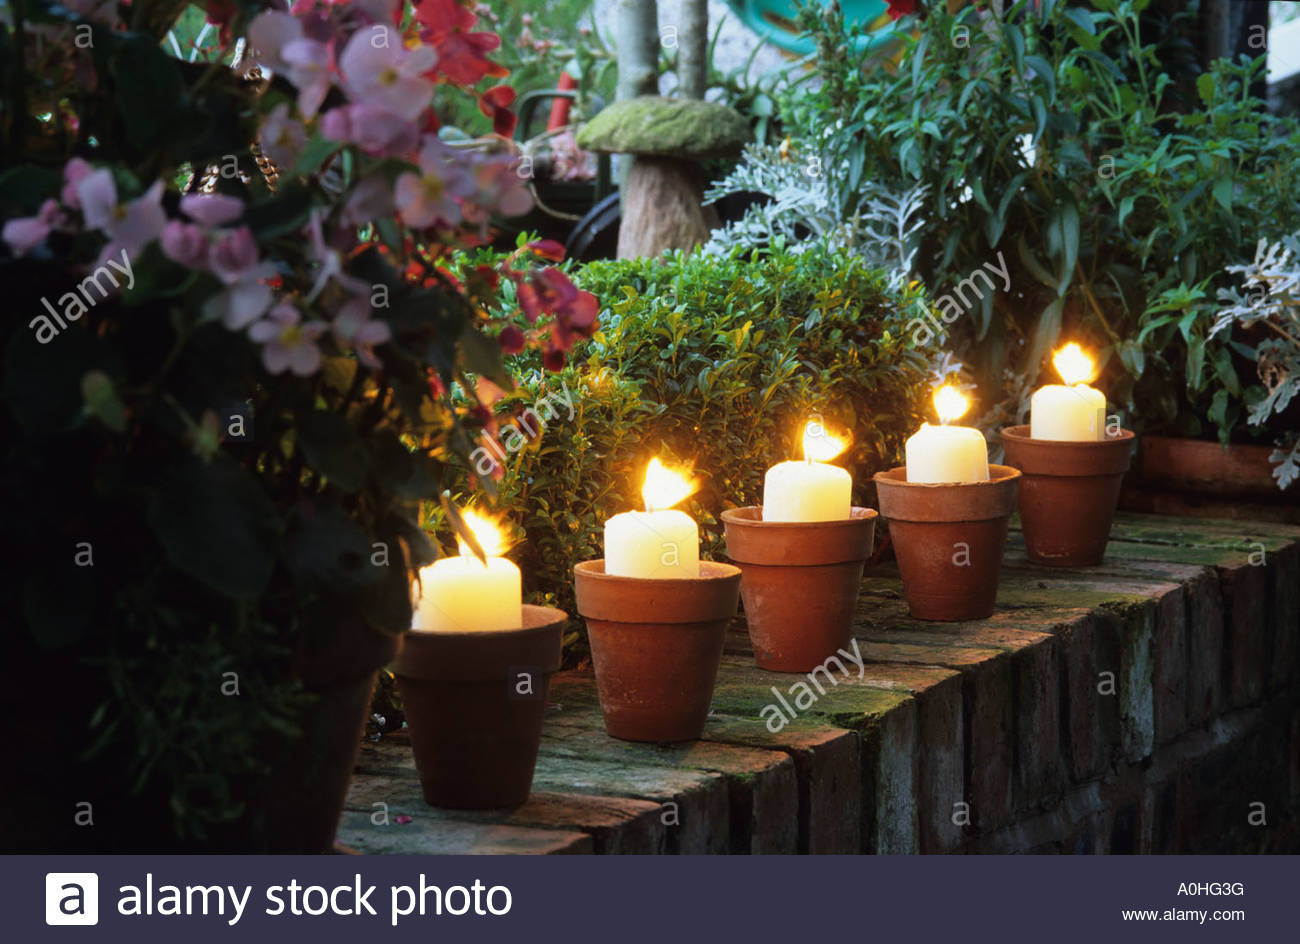 Garden Candle Wall Lights : Woodside Rd. Chester. Garden Lighting. Candles in pots on garden Stock Photo, Royalty Free Image ...